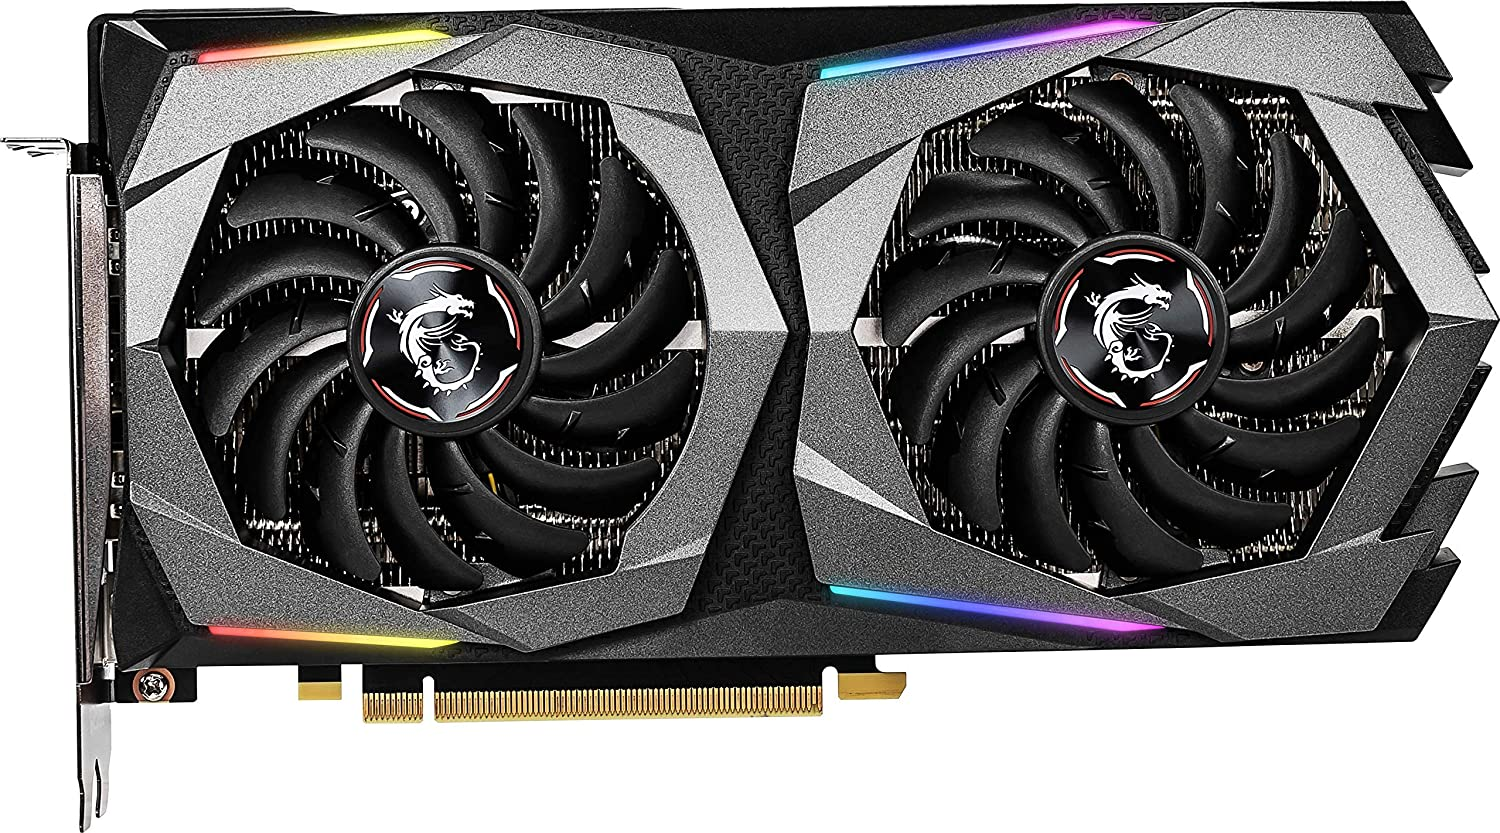 MSI Gaming GeForce RTX 2060 Super 8GB GDRR6 256-bit HDMI/DP G-Sync ...